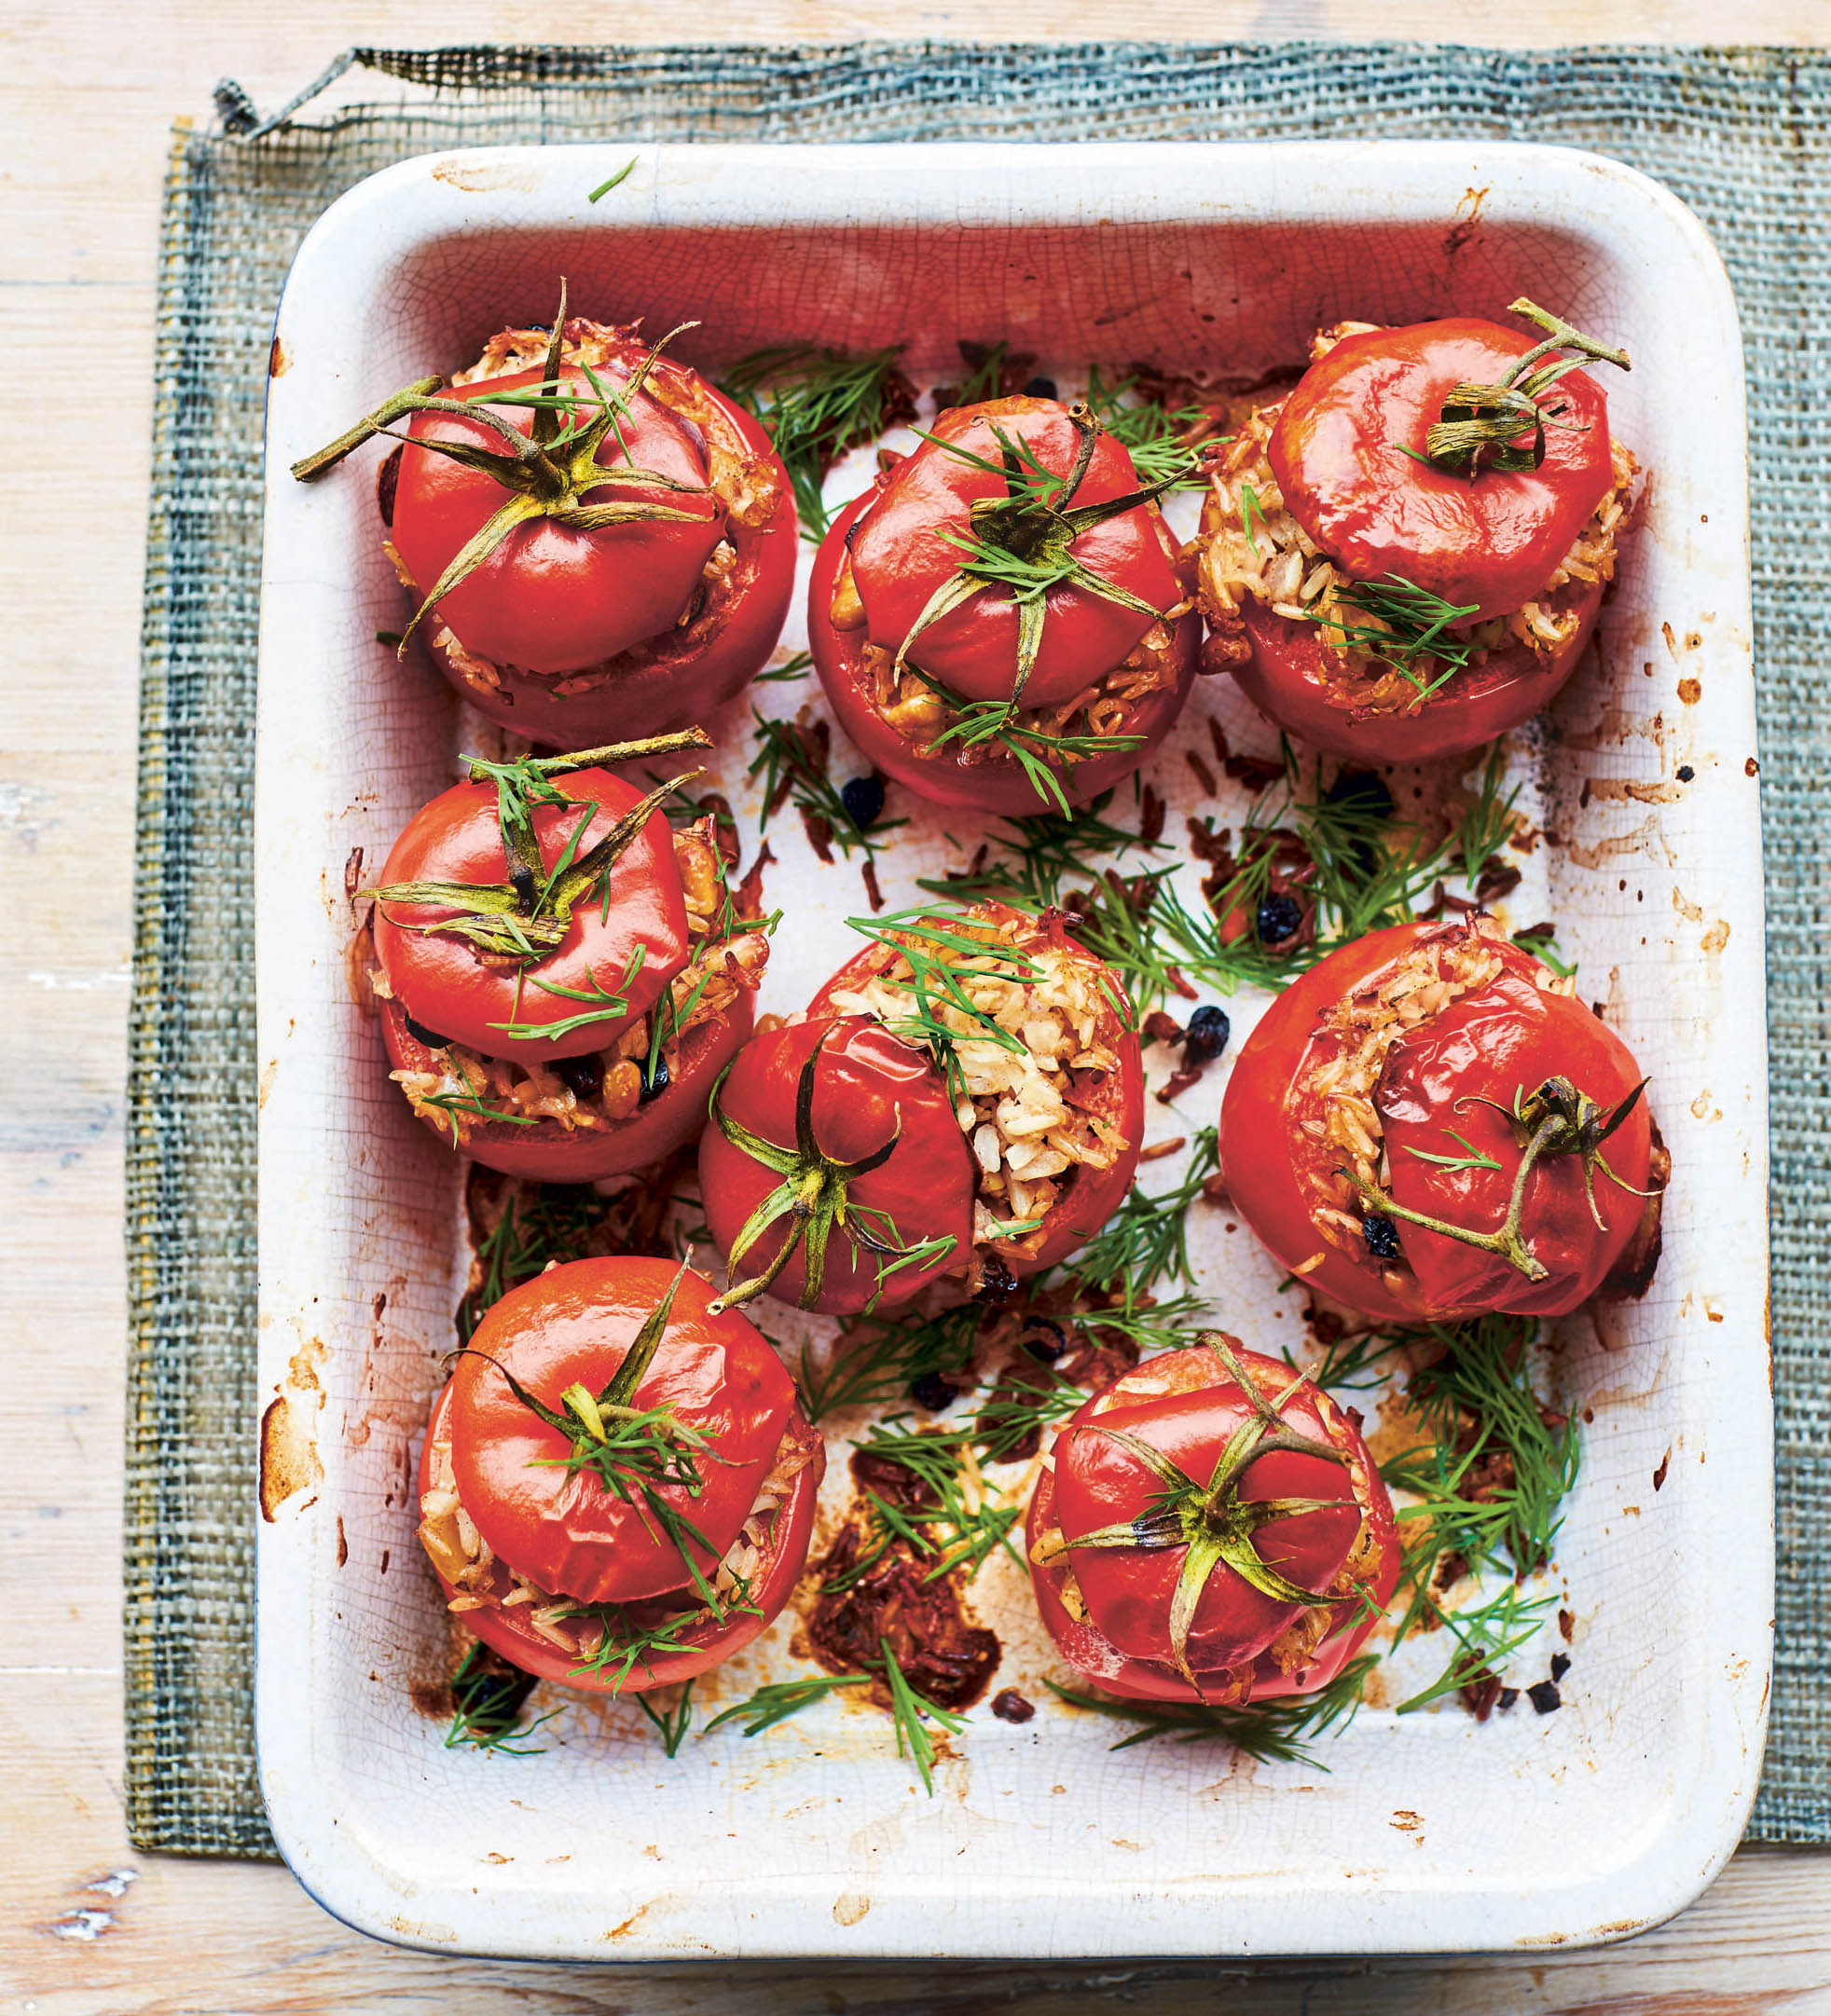 Pilaf stuffed tomatoes (Laura Edwards/PA)